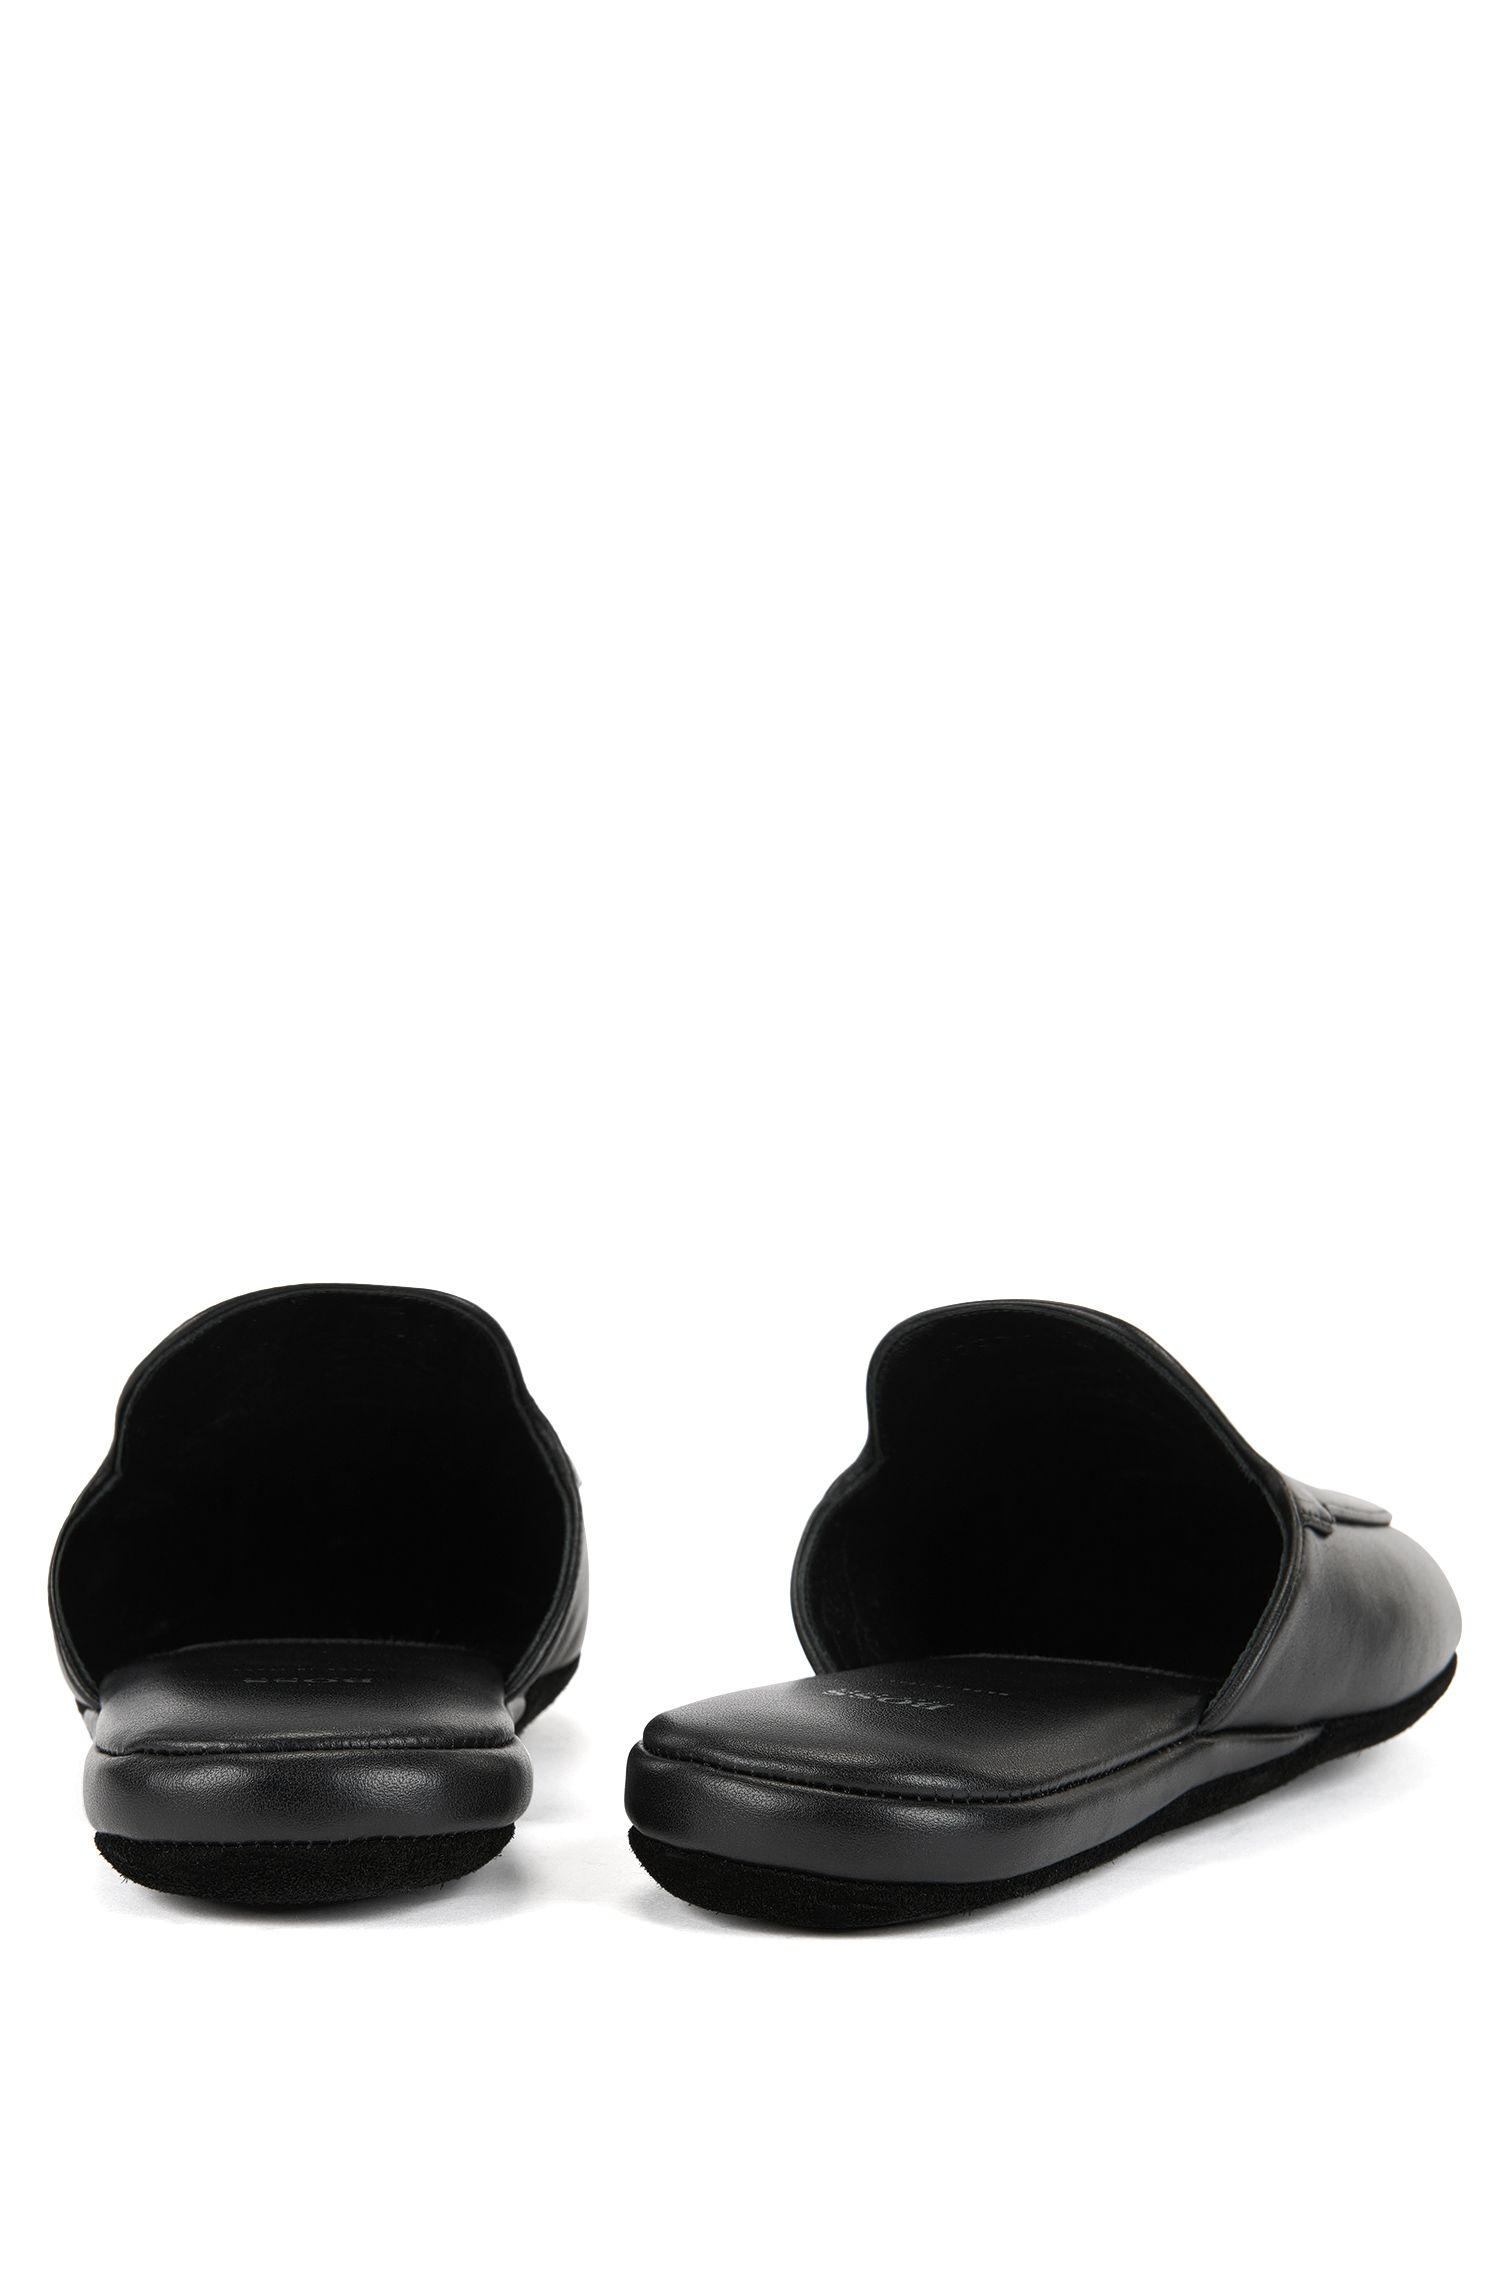 Slip-on shoes in nappa leather, Black